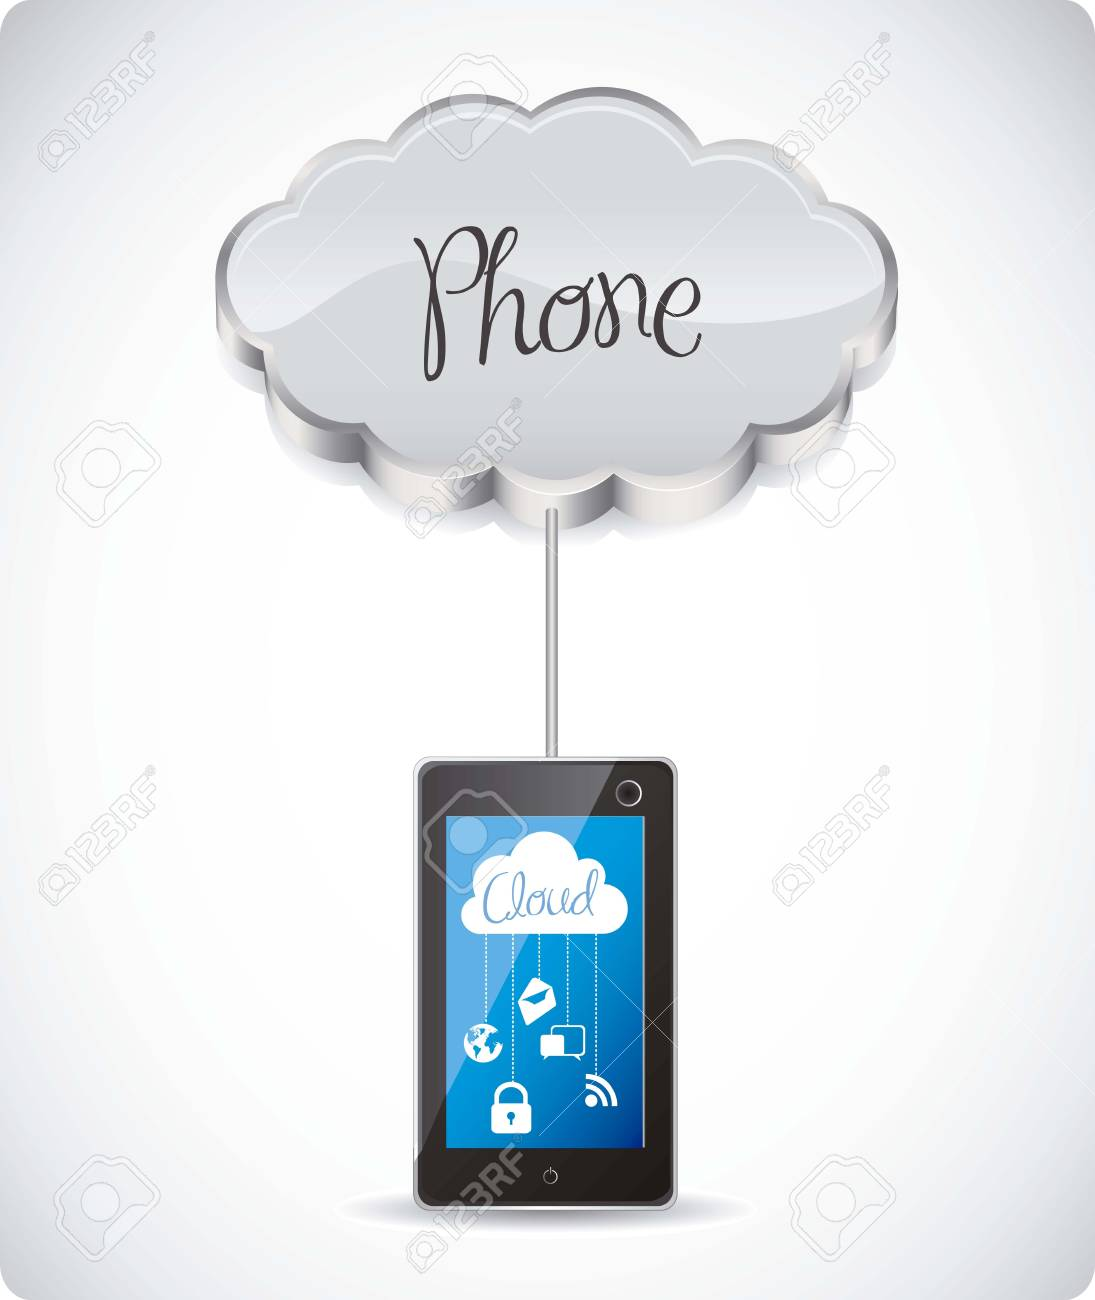 illustration of cloud computers and communications technology, vector illustration Stock Vector - 15675241